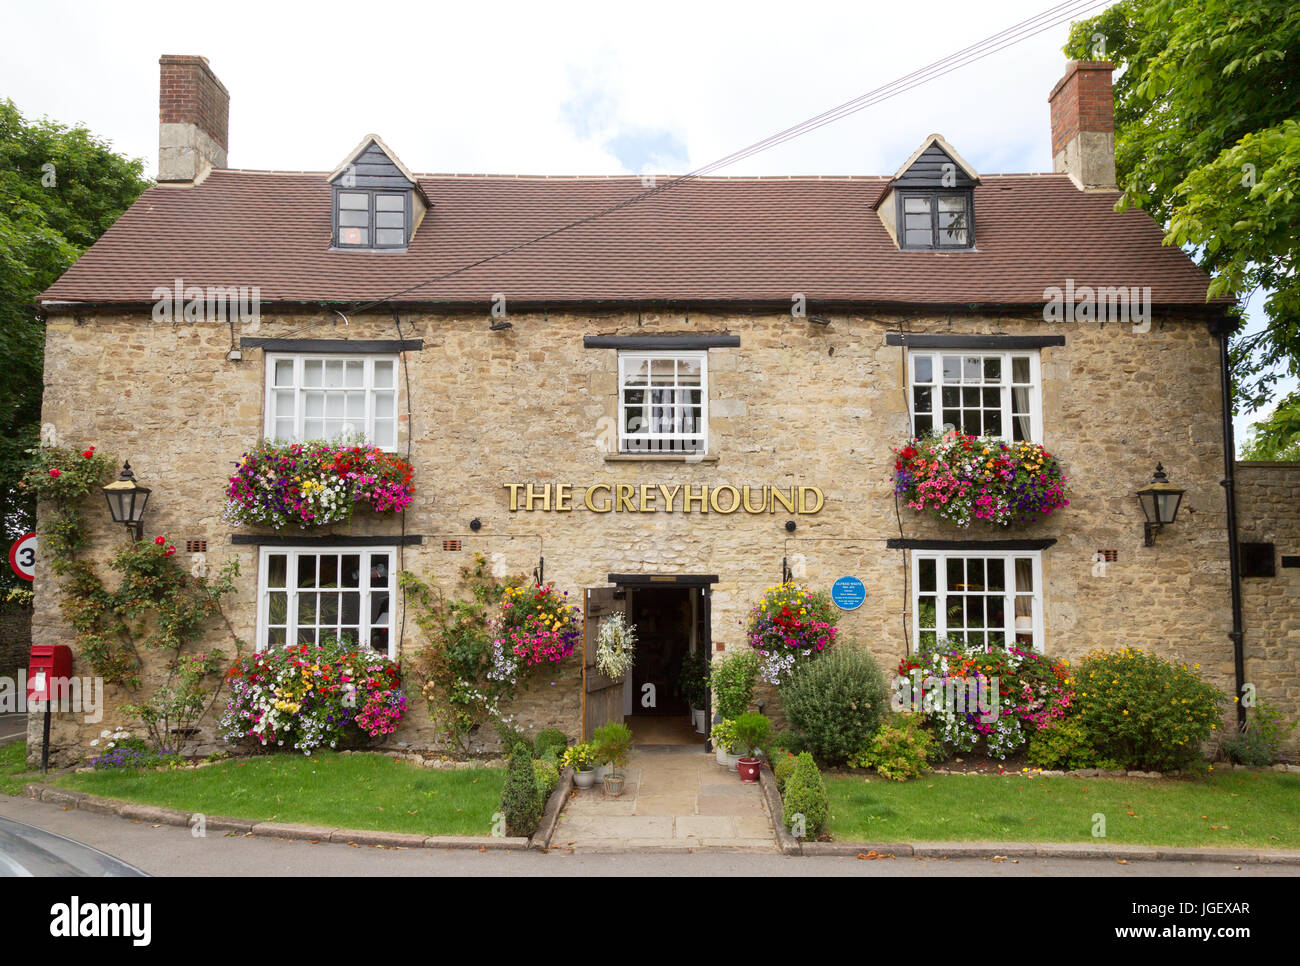 The Greyhound Pub, Wooton, Oxfordshire in summer with flowers and hanging baskets; Oxfordshire England UK - Stock Image